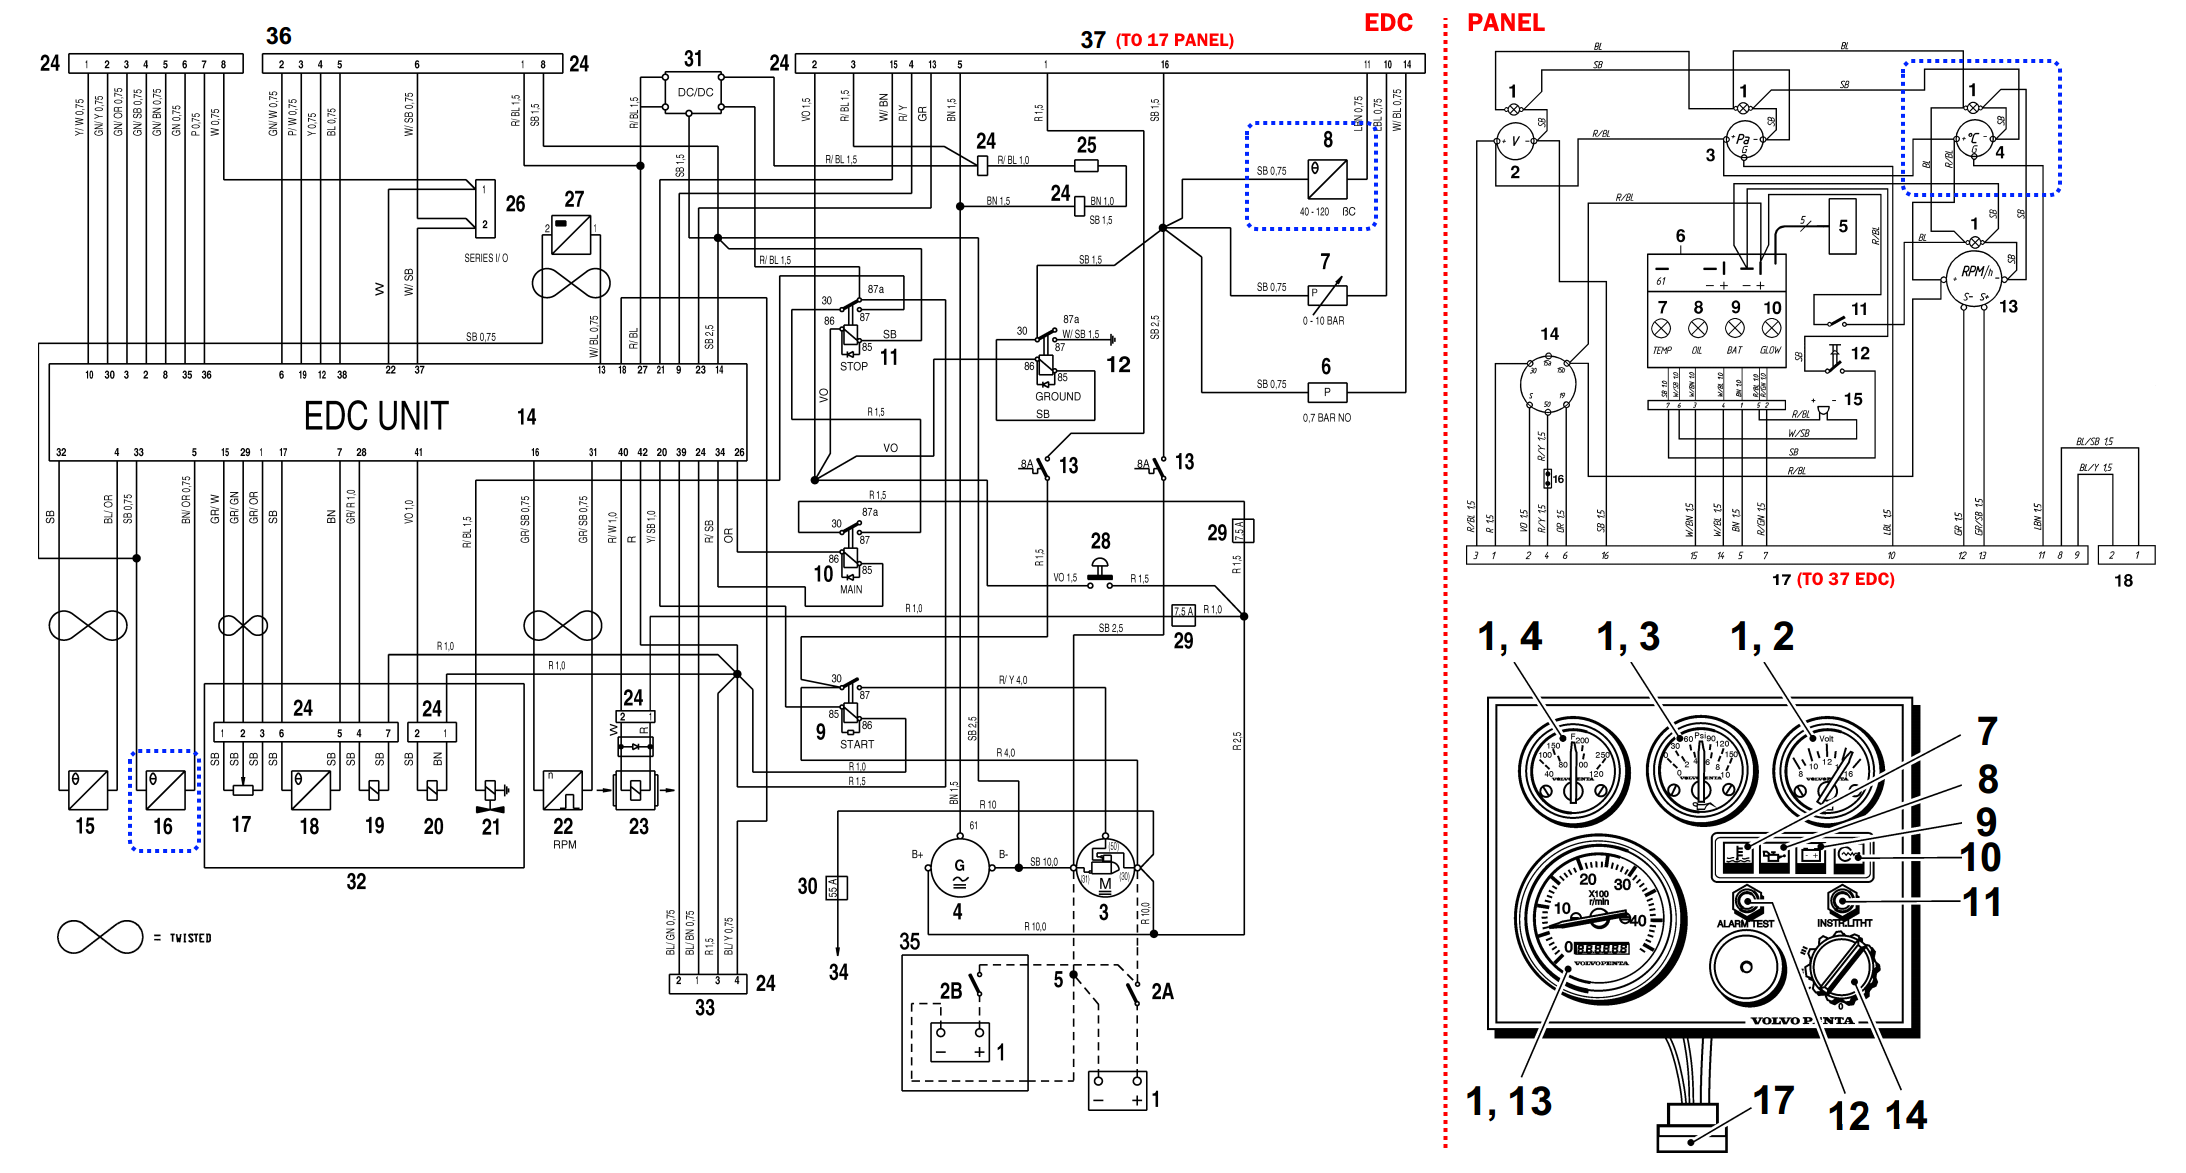 Volvo Penta Wiring Harness Diagram Daily Update 260a Engine D Schemes Html Imageresizertool Com